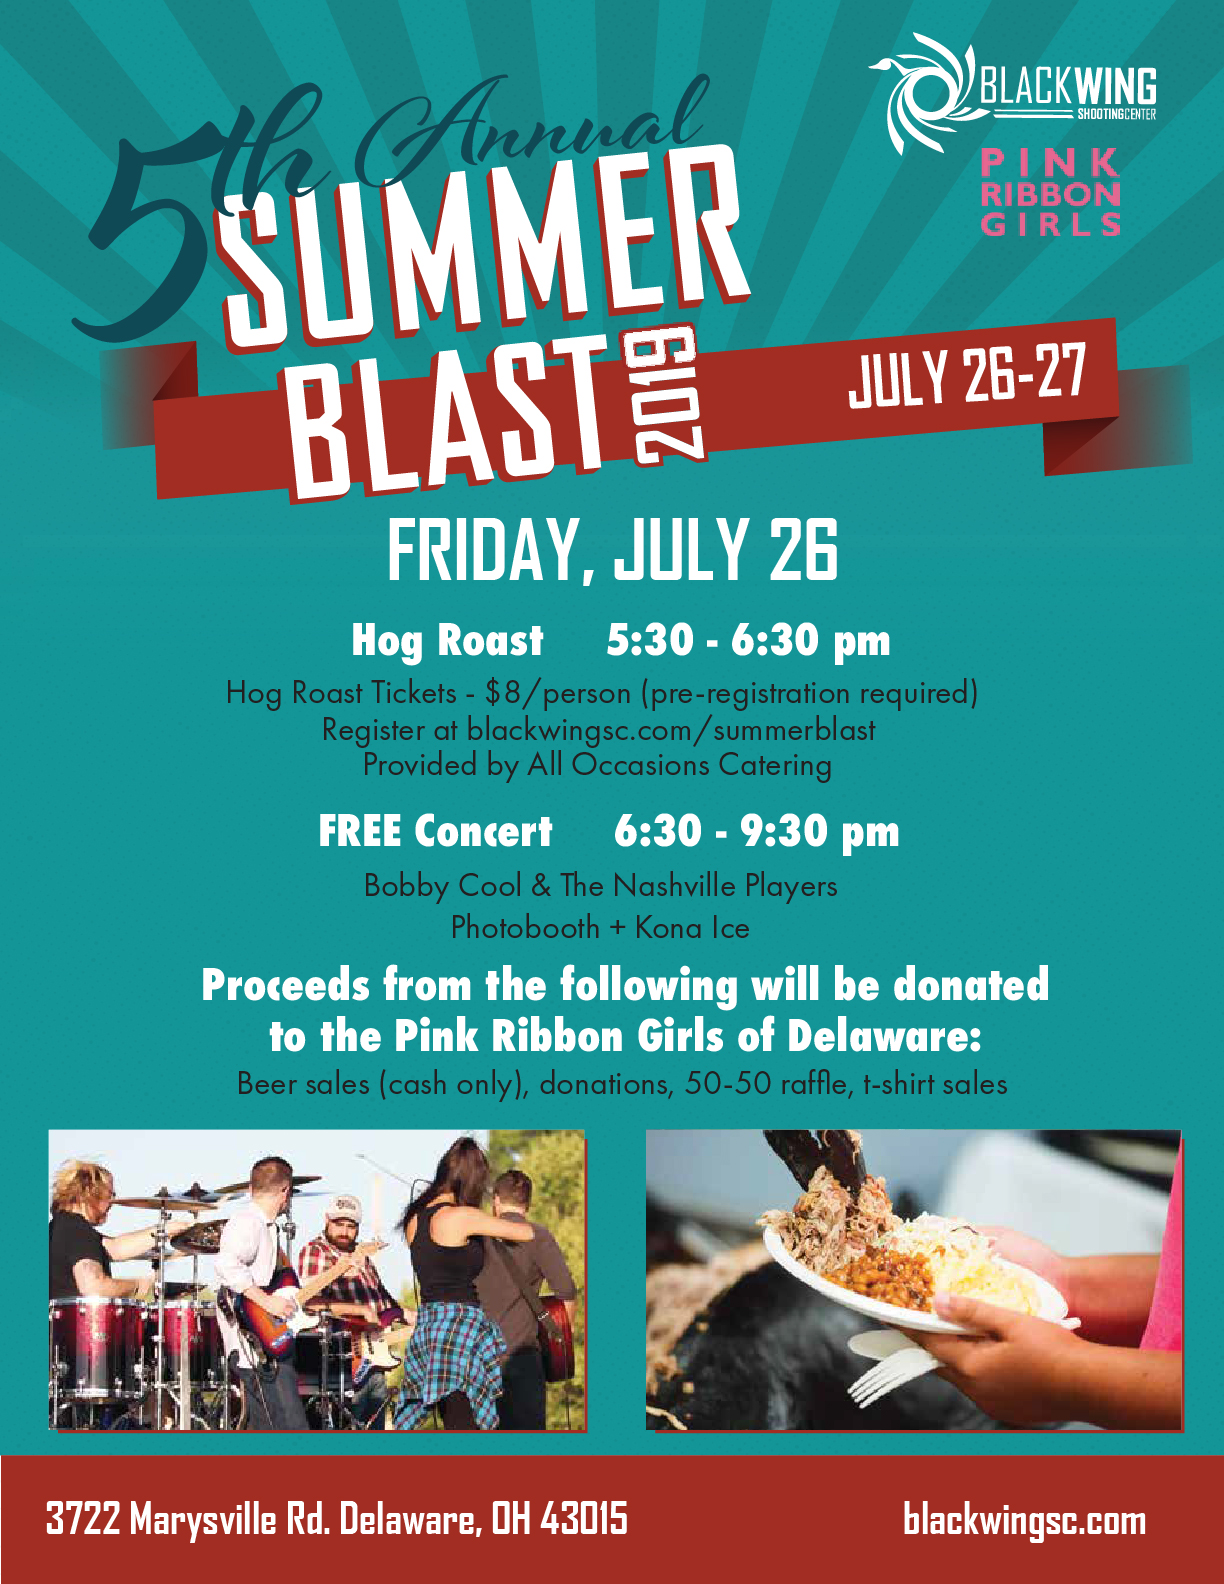 Summer Blast Friday